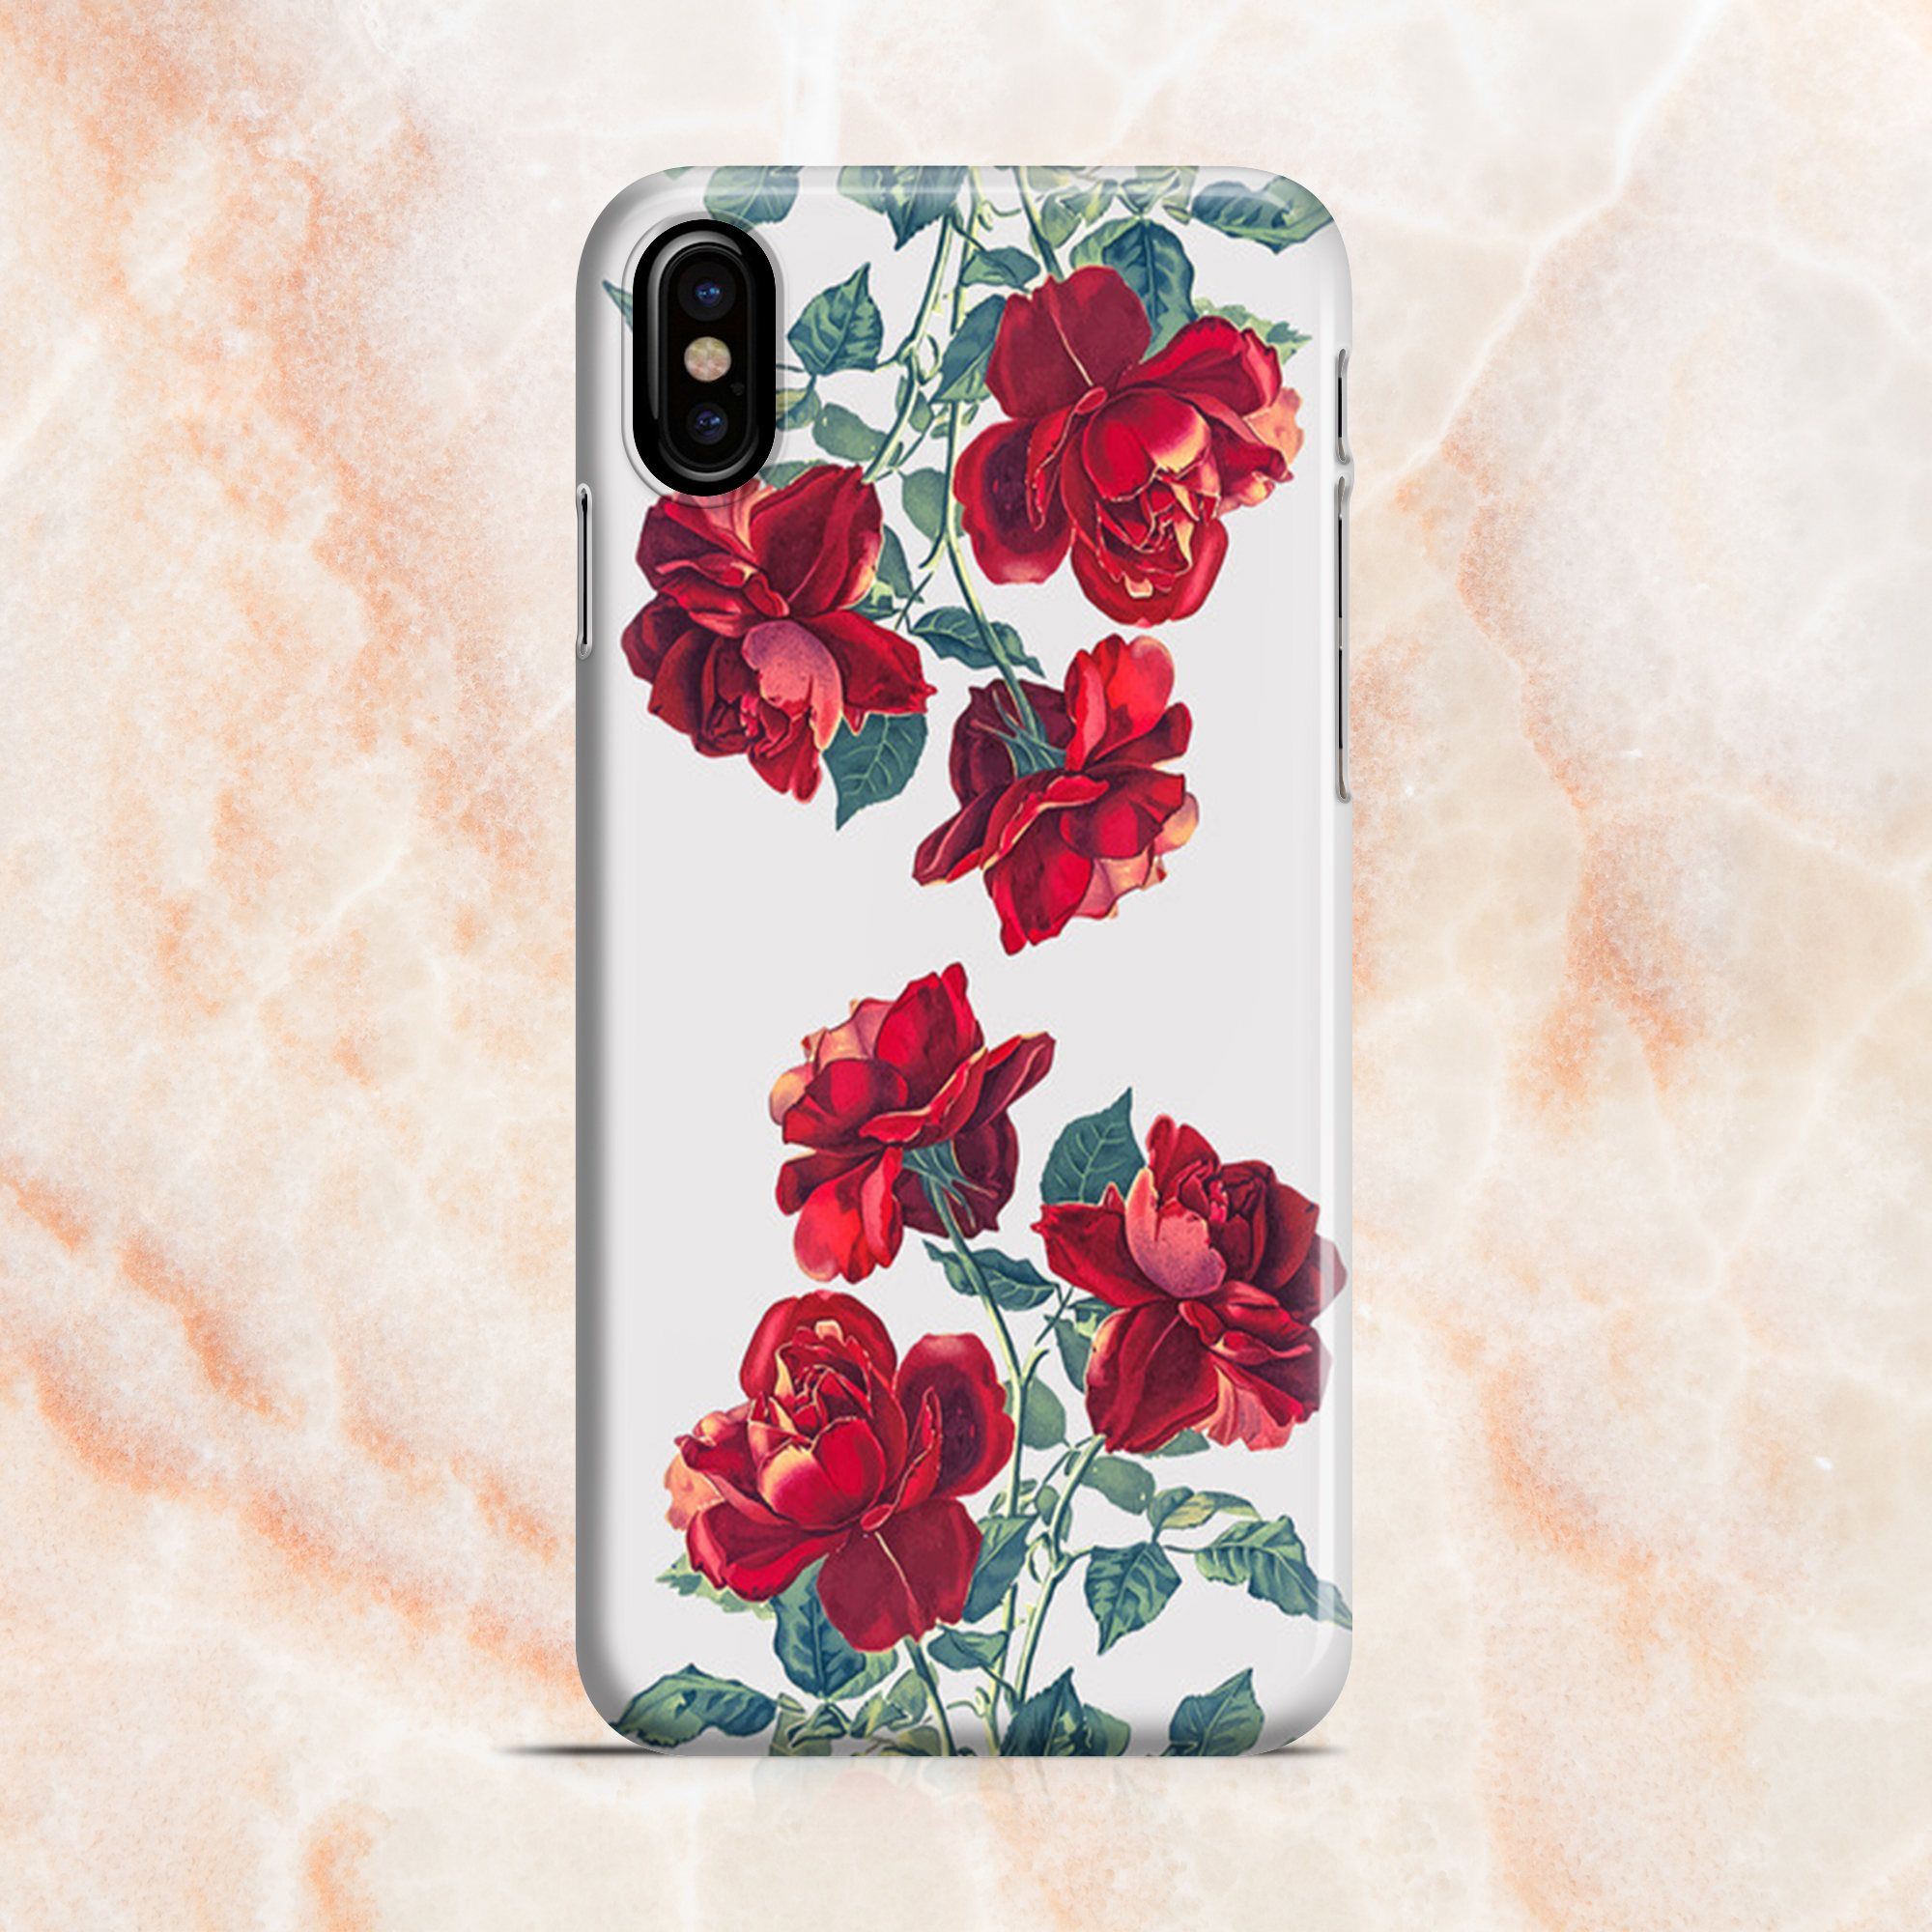 iphone 8 case red floral